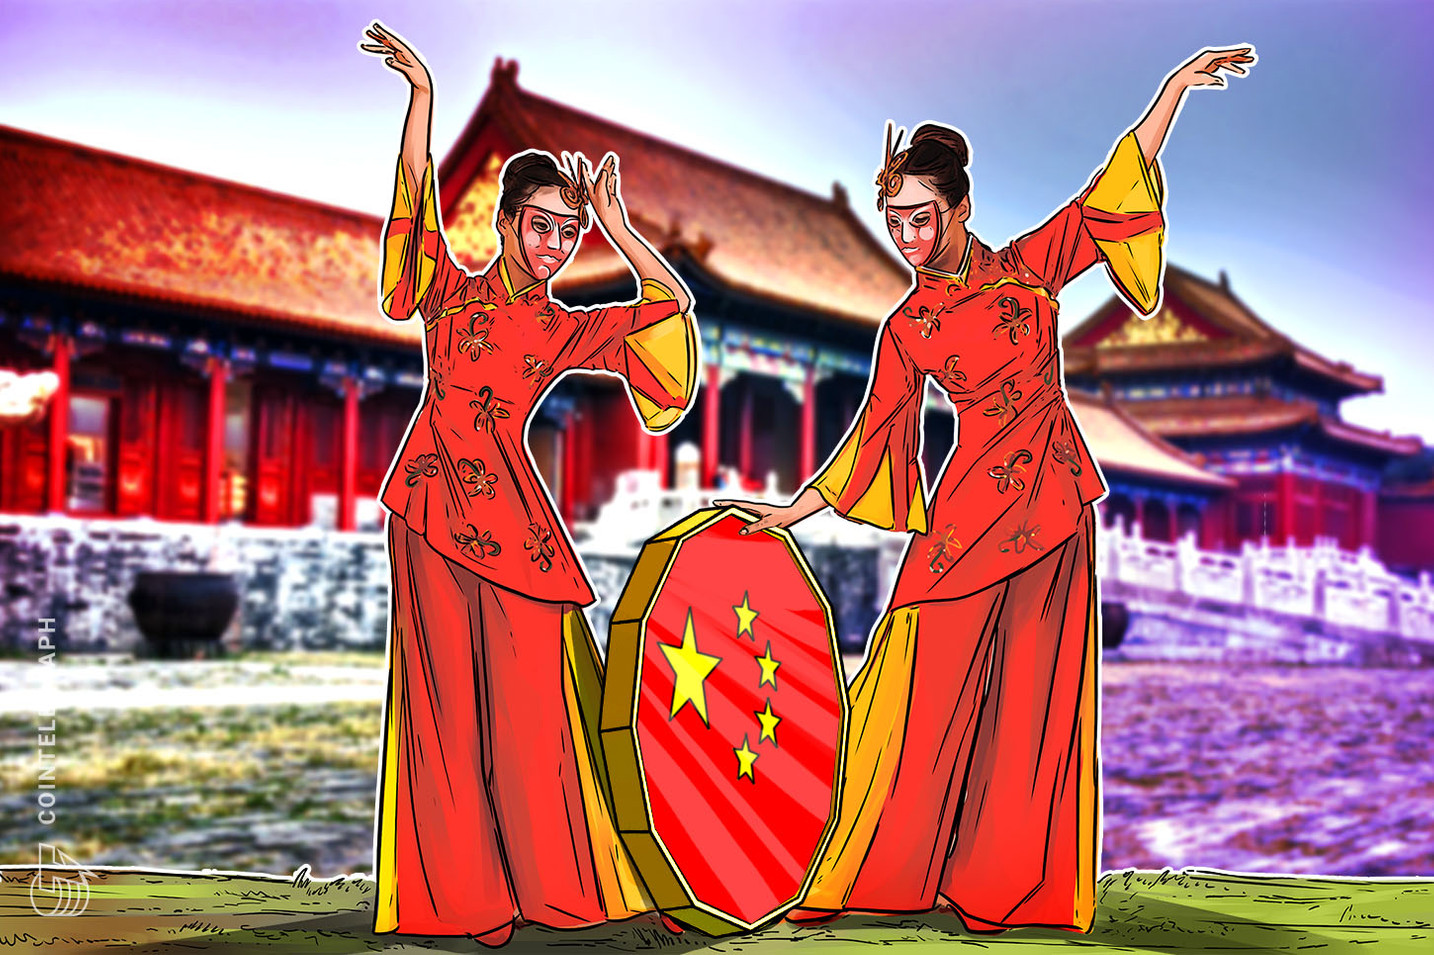 The Digital Yuan Is Being Tested for a Workers' Subsidies Scheme in Suzhou